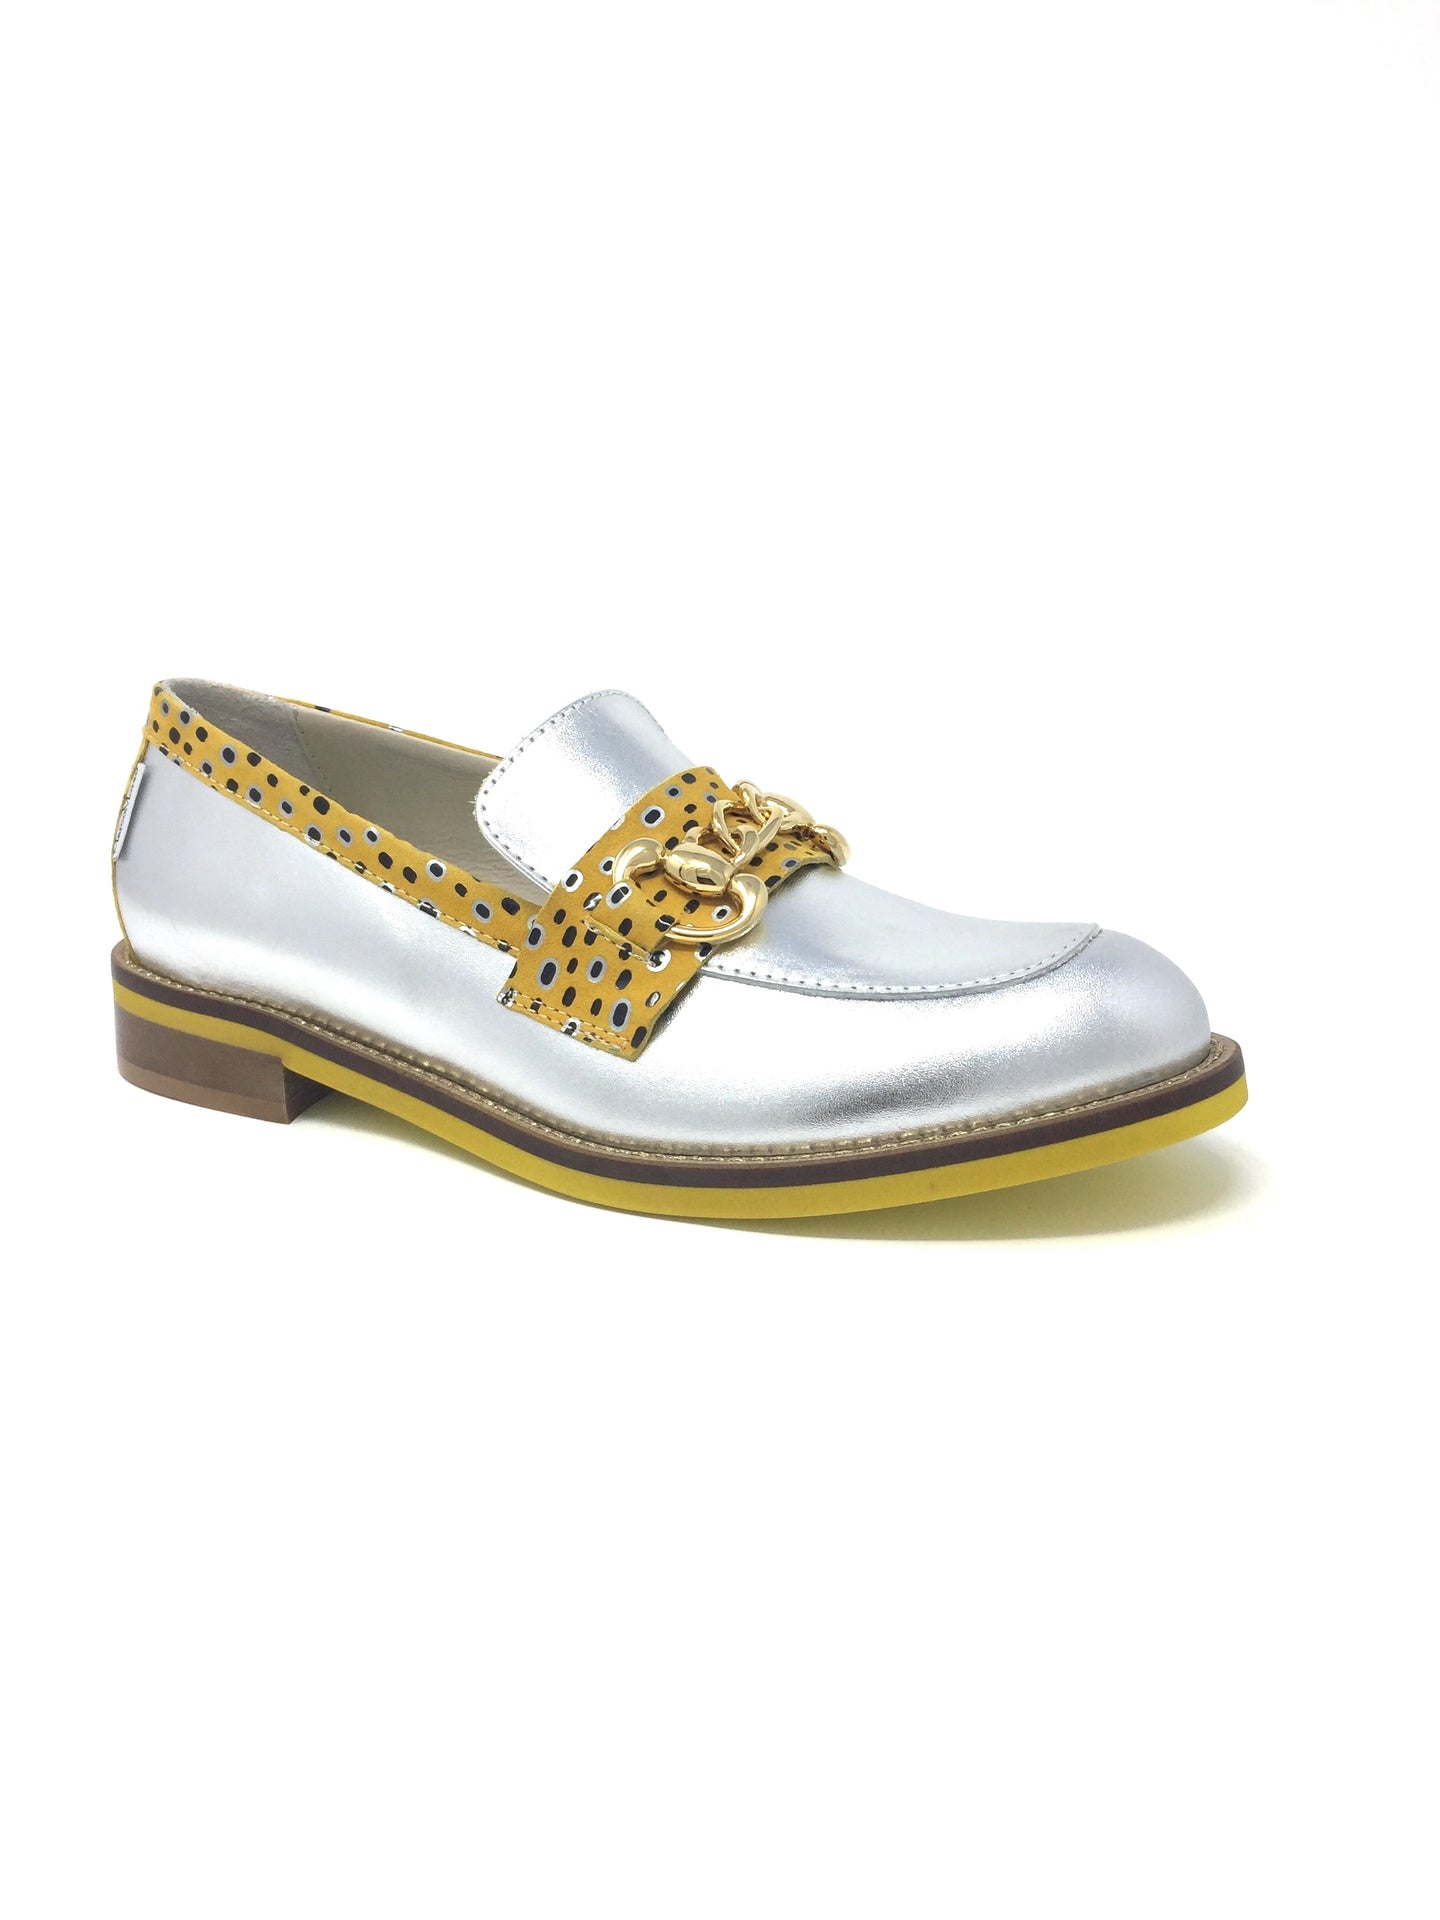 H840 Marco Moreo Bice Ladies Silver & Leopard Print Moccasin Shoe for sale online ireland